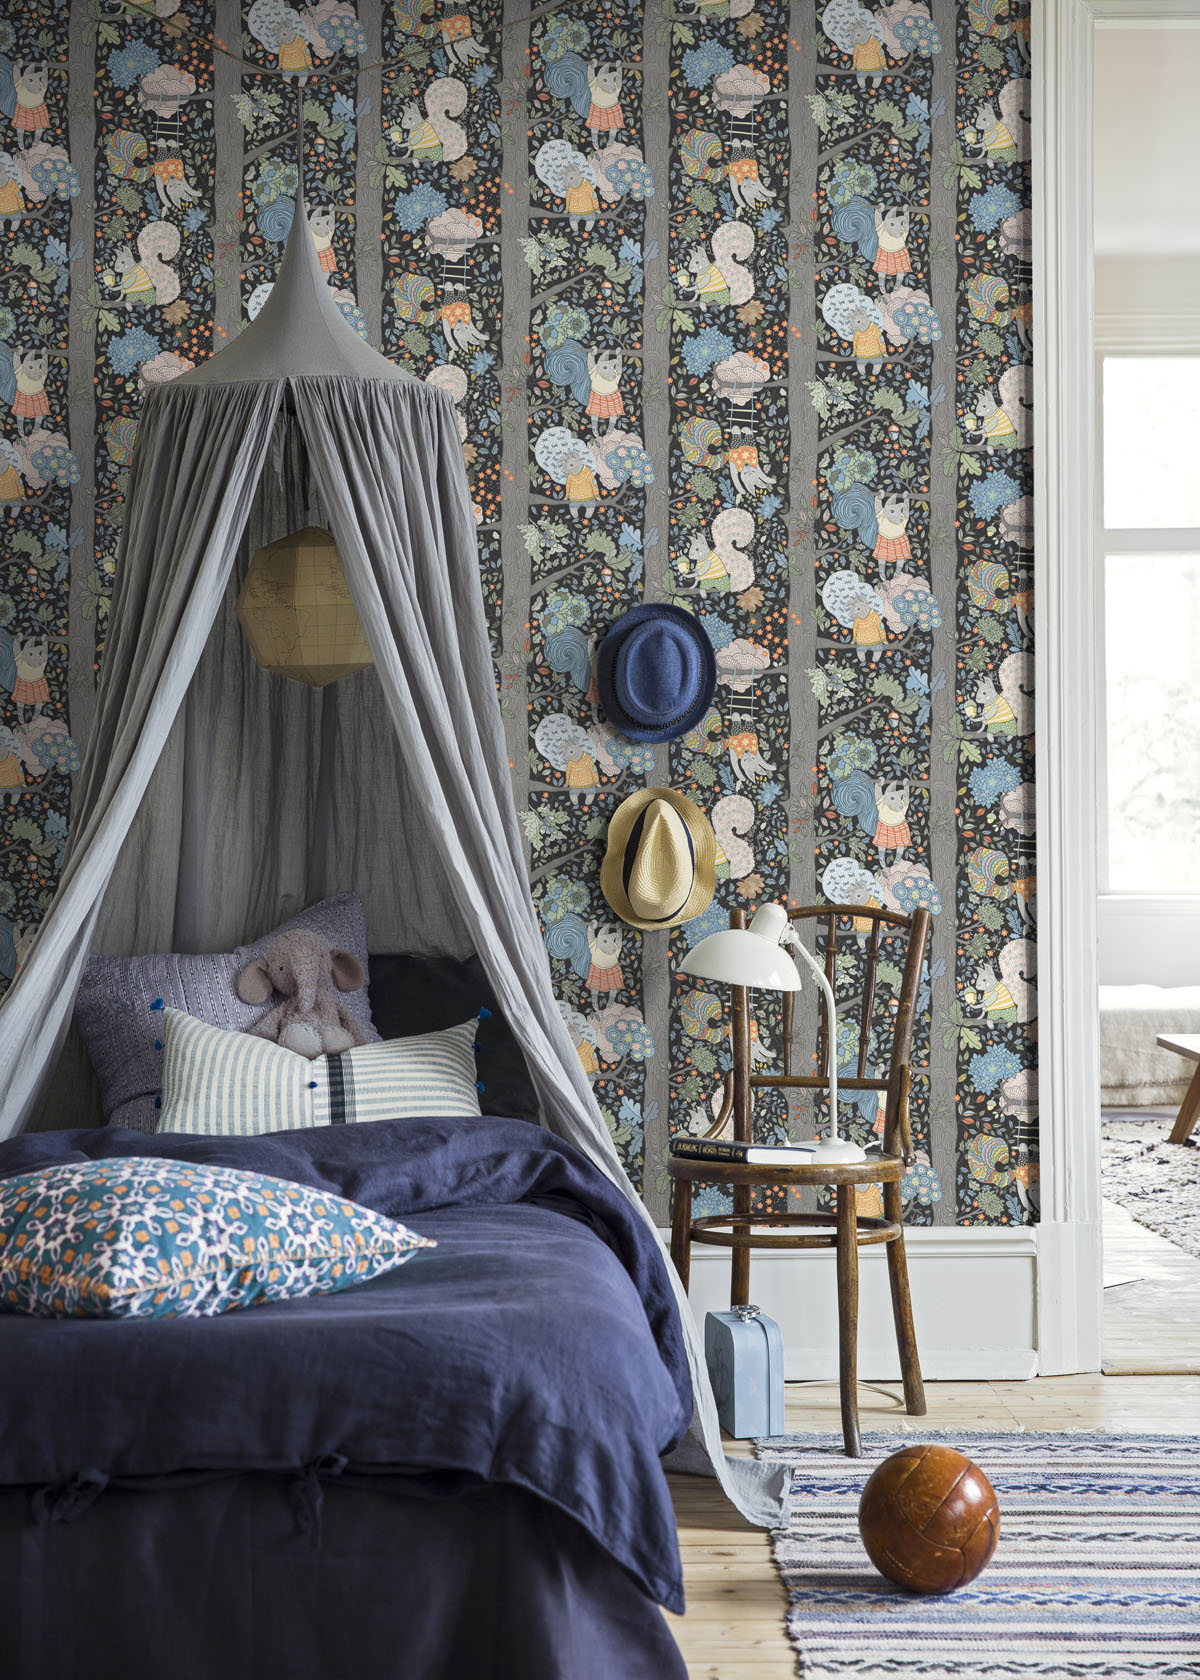 Charlie Wallpaper with Canopy Bed